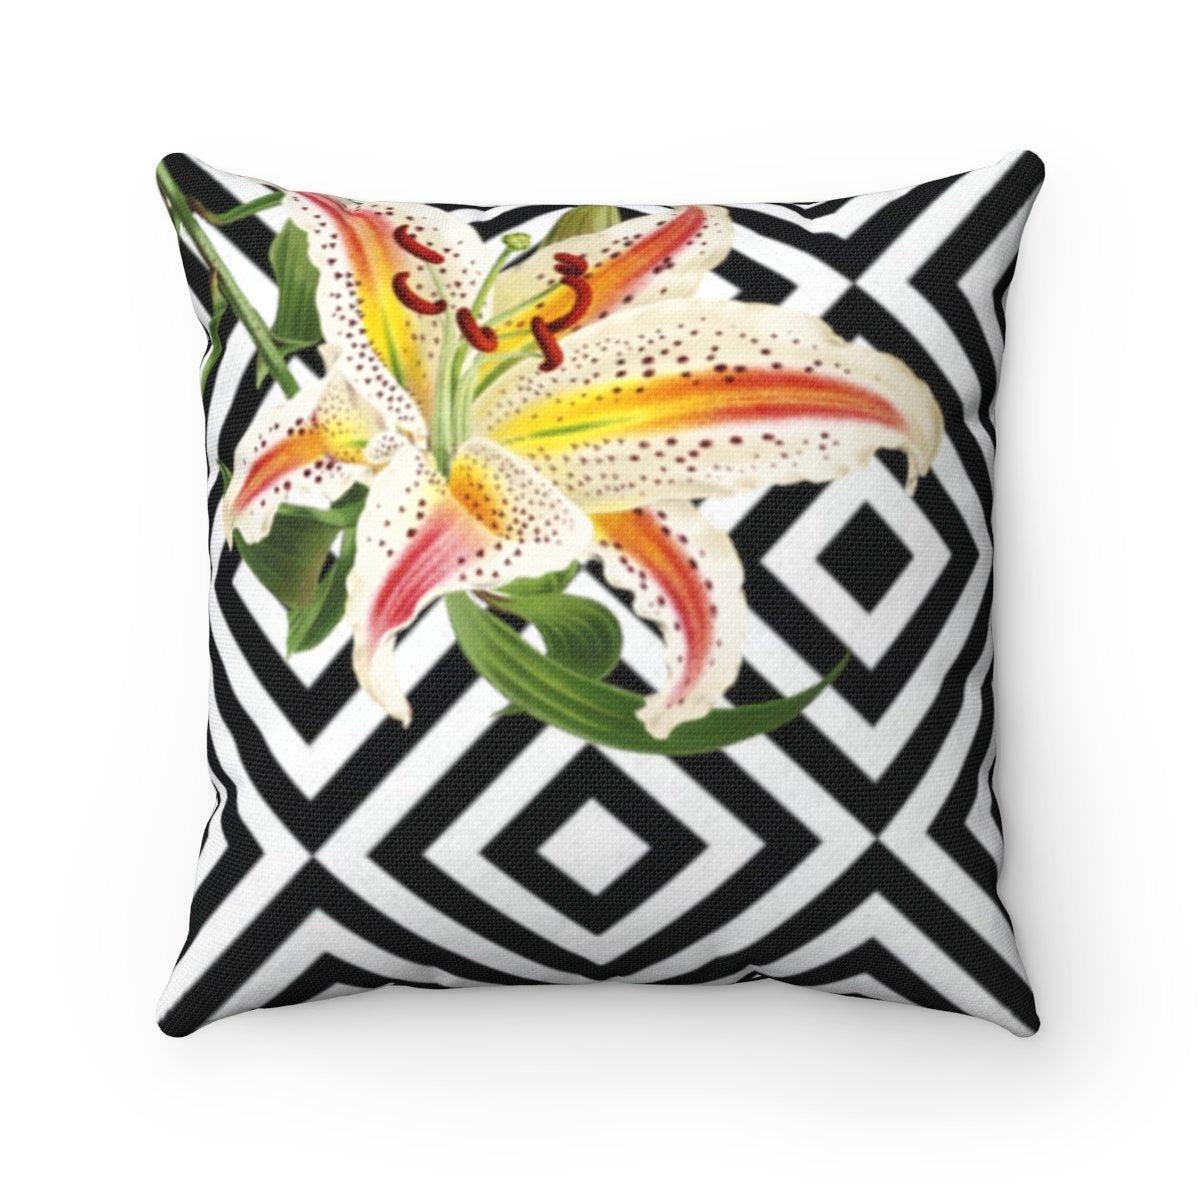 Luxury lily| Floral abstract decorative cushion cover-Home Decor - Decorative Accents - Pillows & Throws - Decorative Pillows-Maison d'Elite-14x14-Très Elite